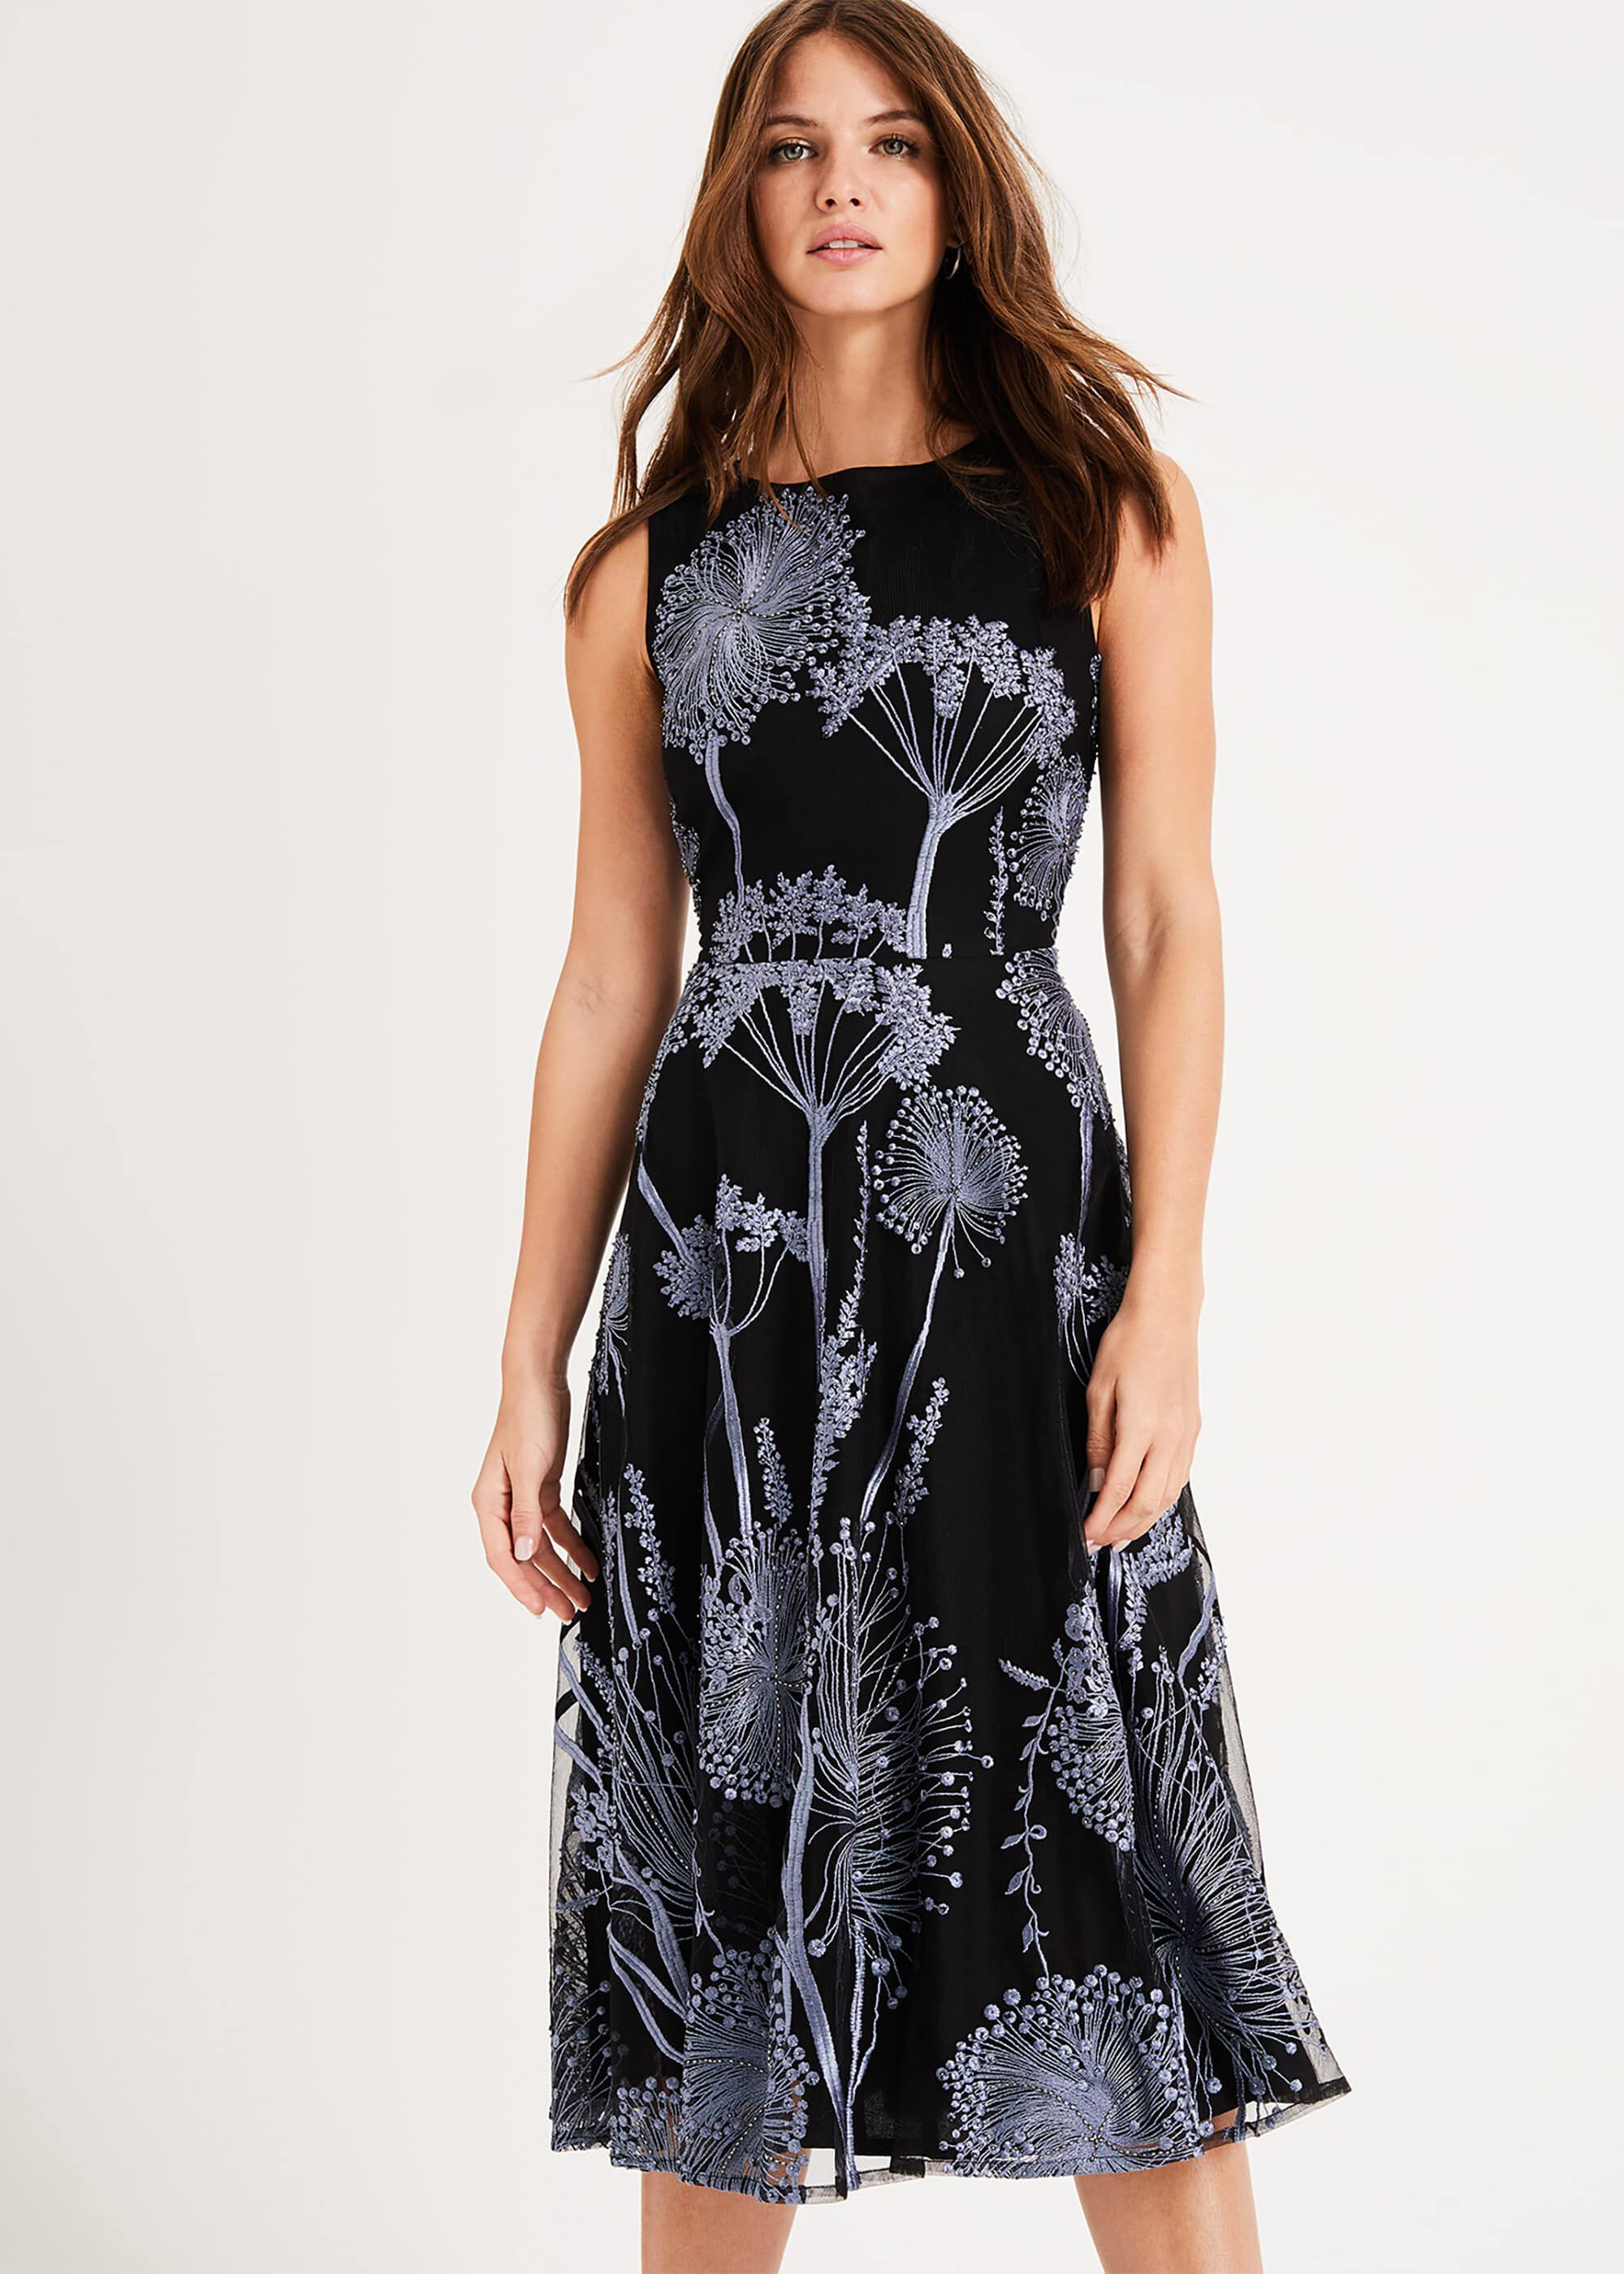 Phase Eight Franchesca Floral Dress, Black, Fit & Flare